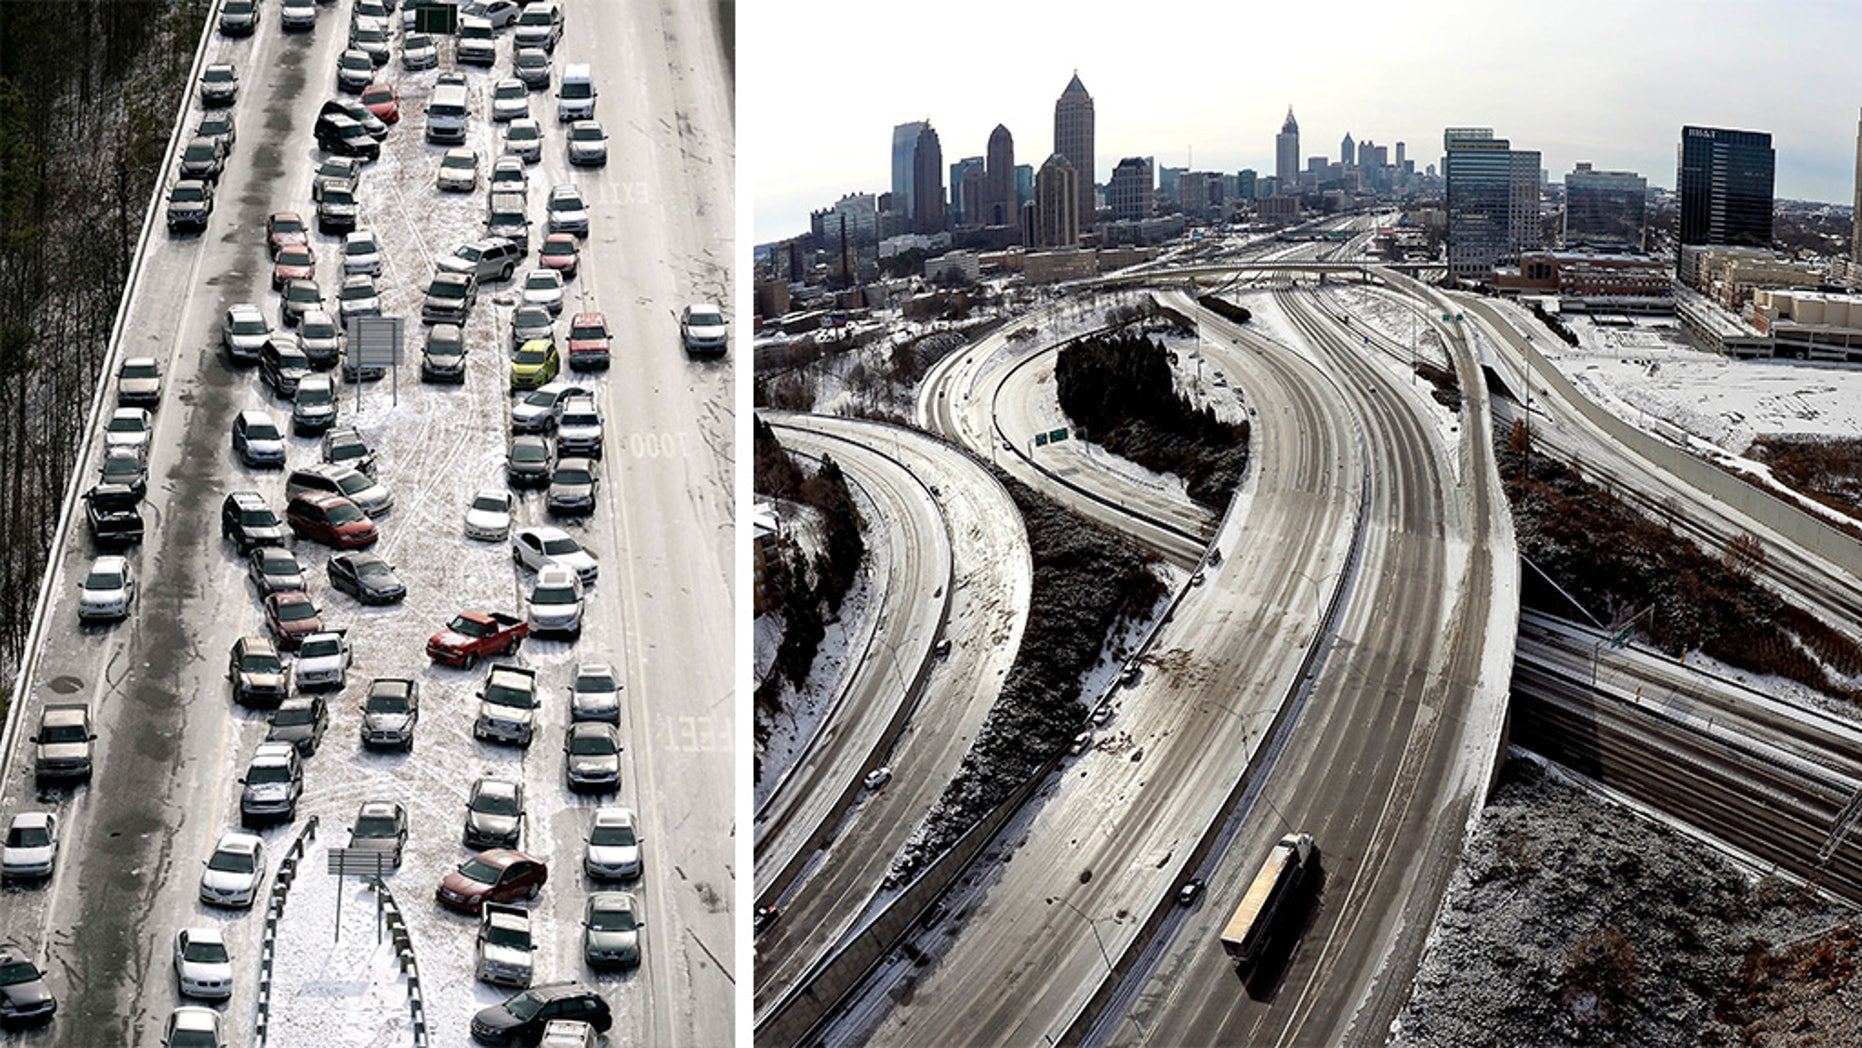 These 2014 photos show how a snowstorm left its impact on Atlanta, a city known for grinding to a halt even in relatively light snowfalls. (AP, File)